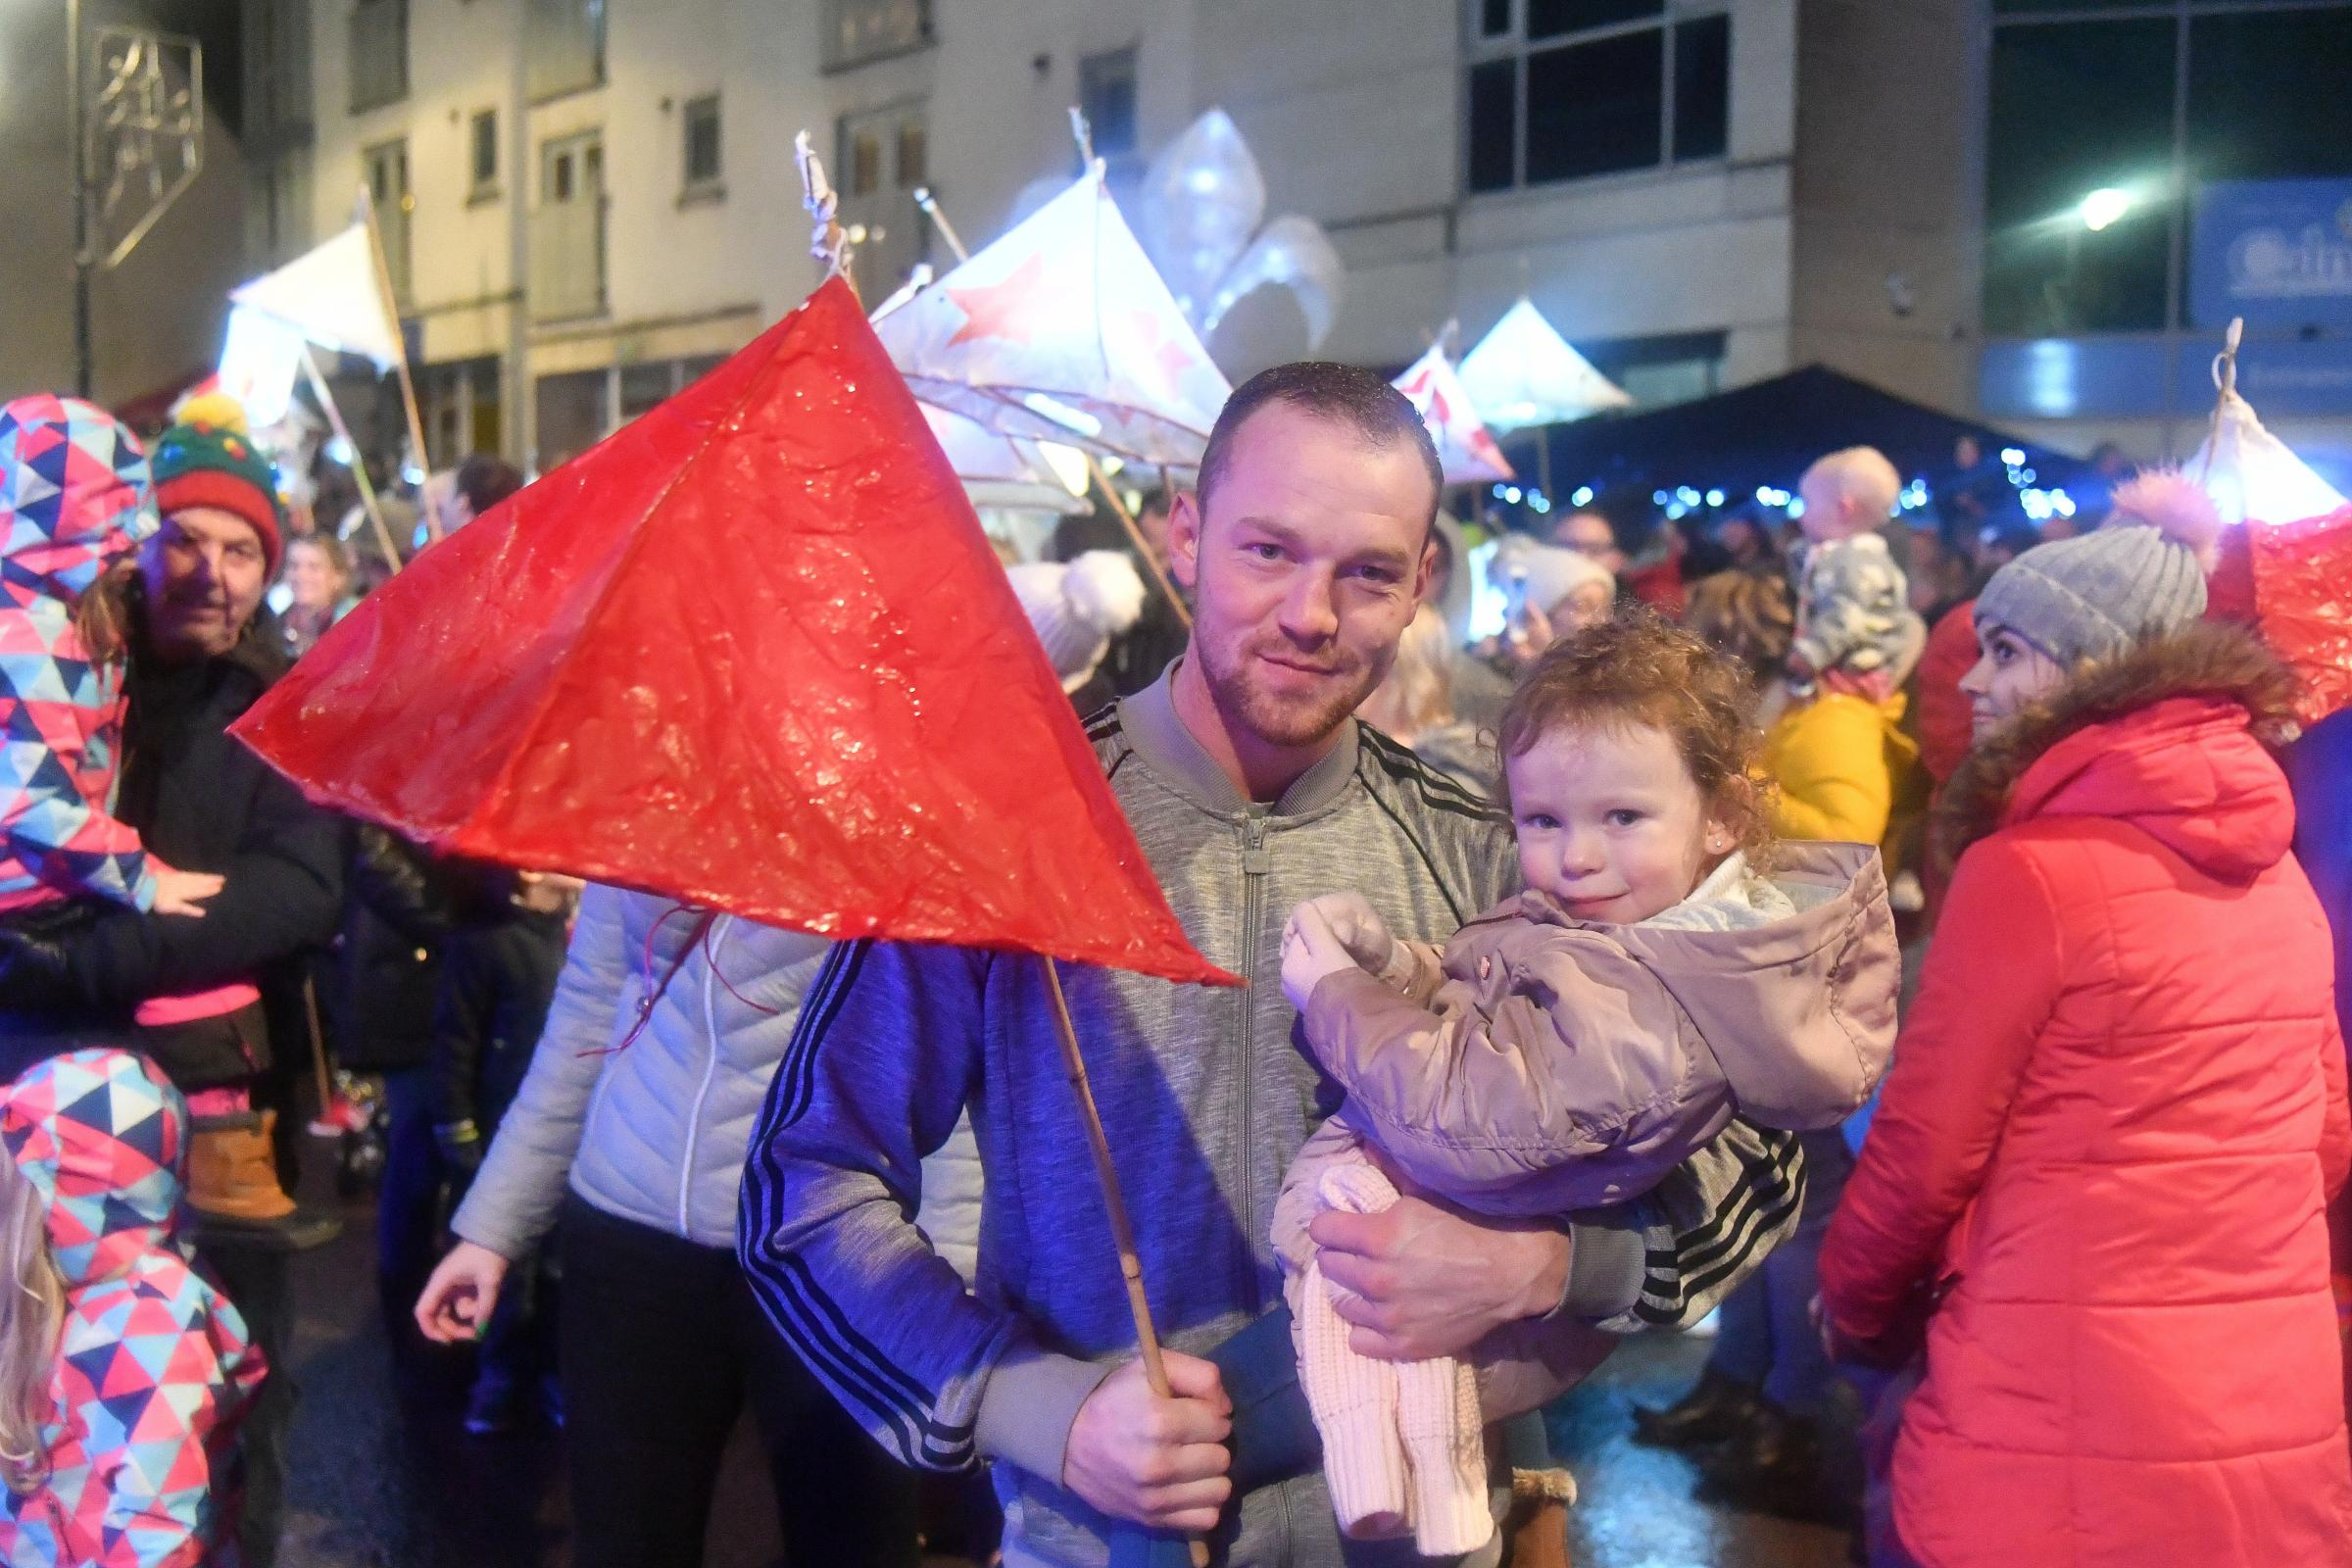 The annual Calne Lantern Parade